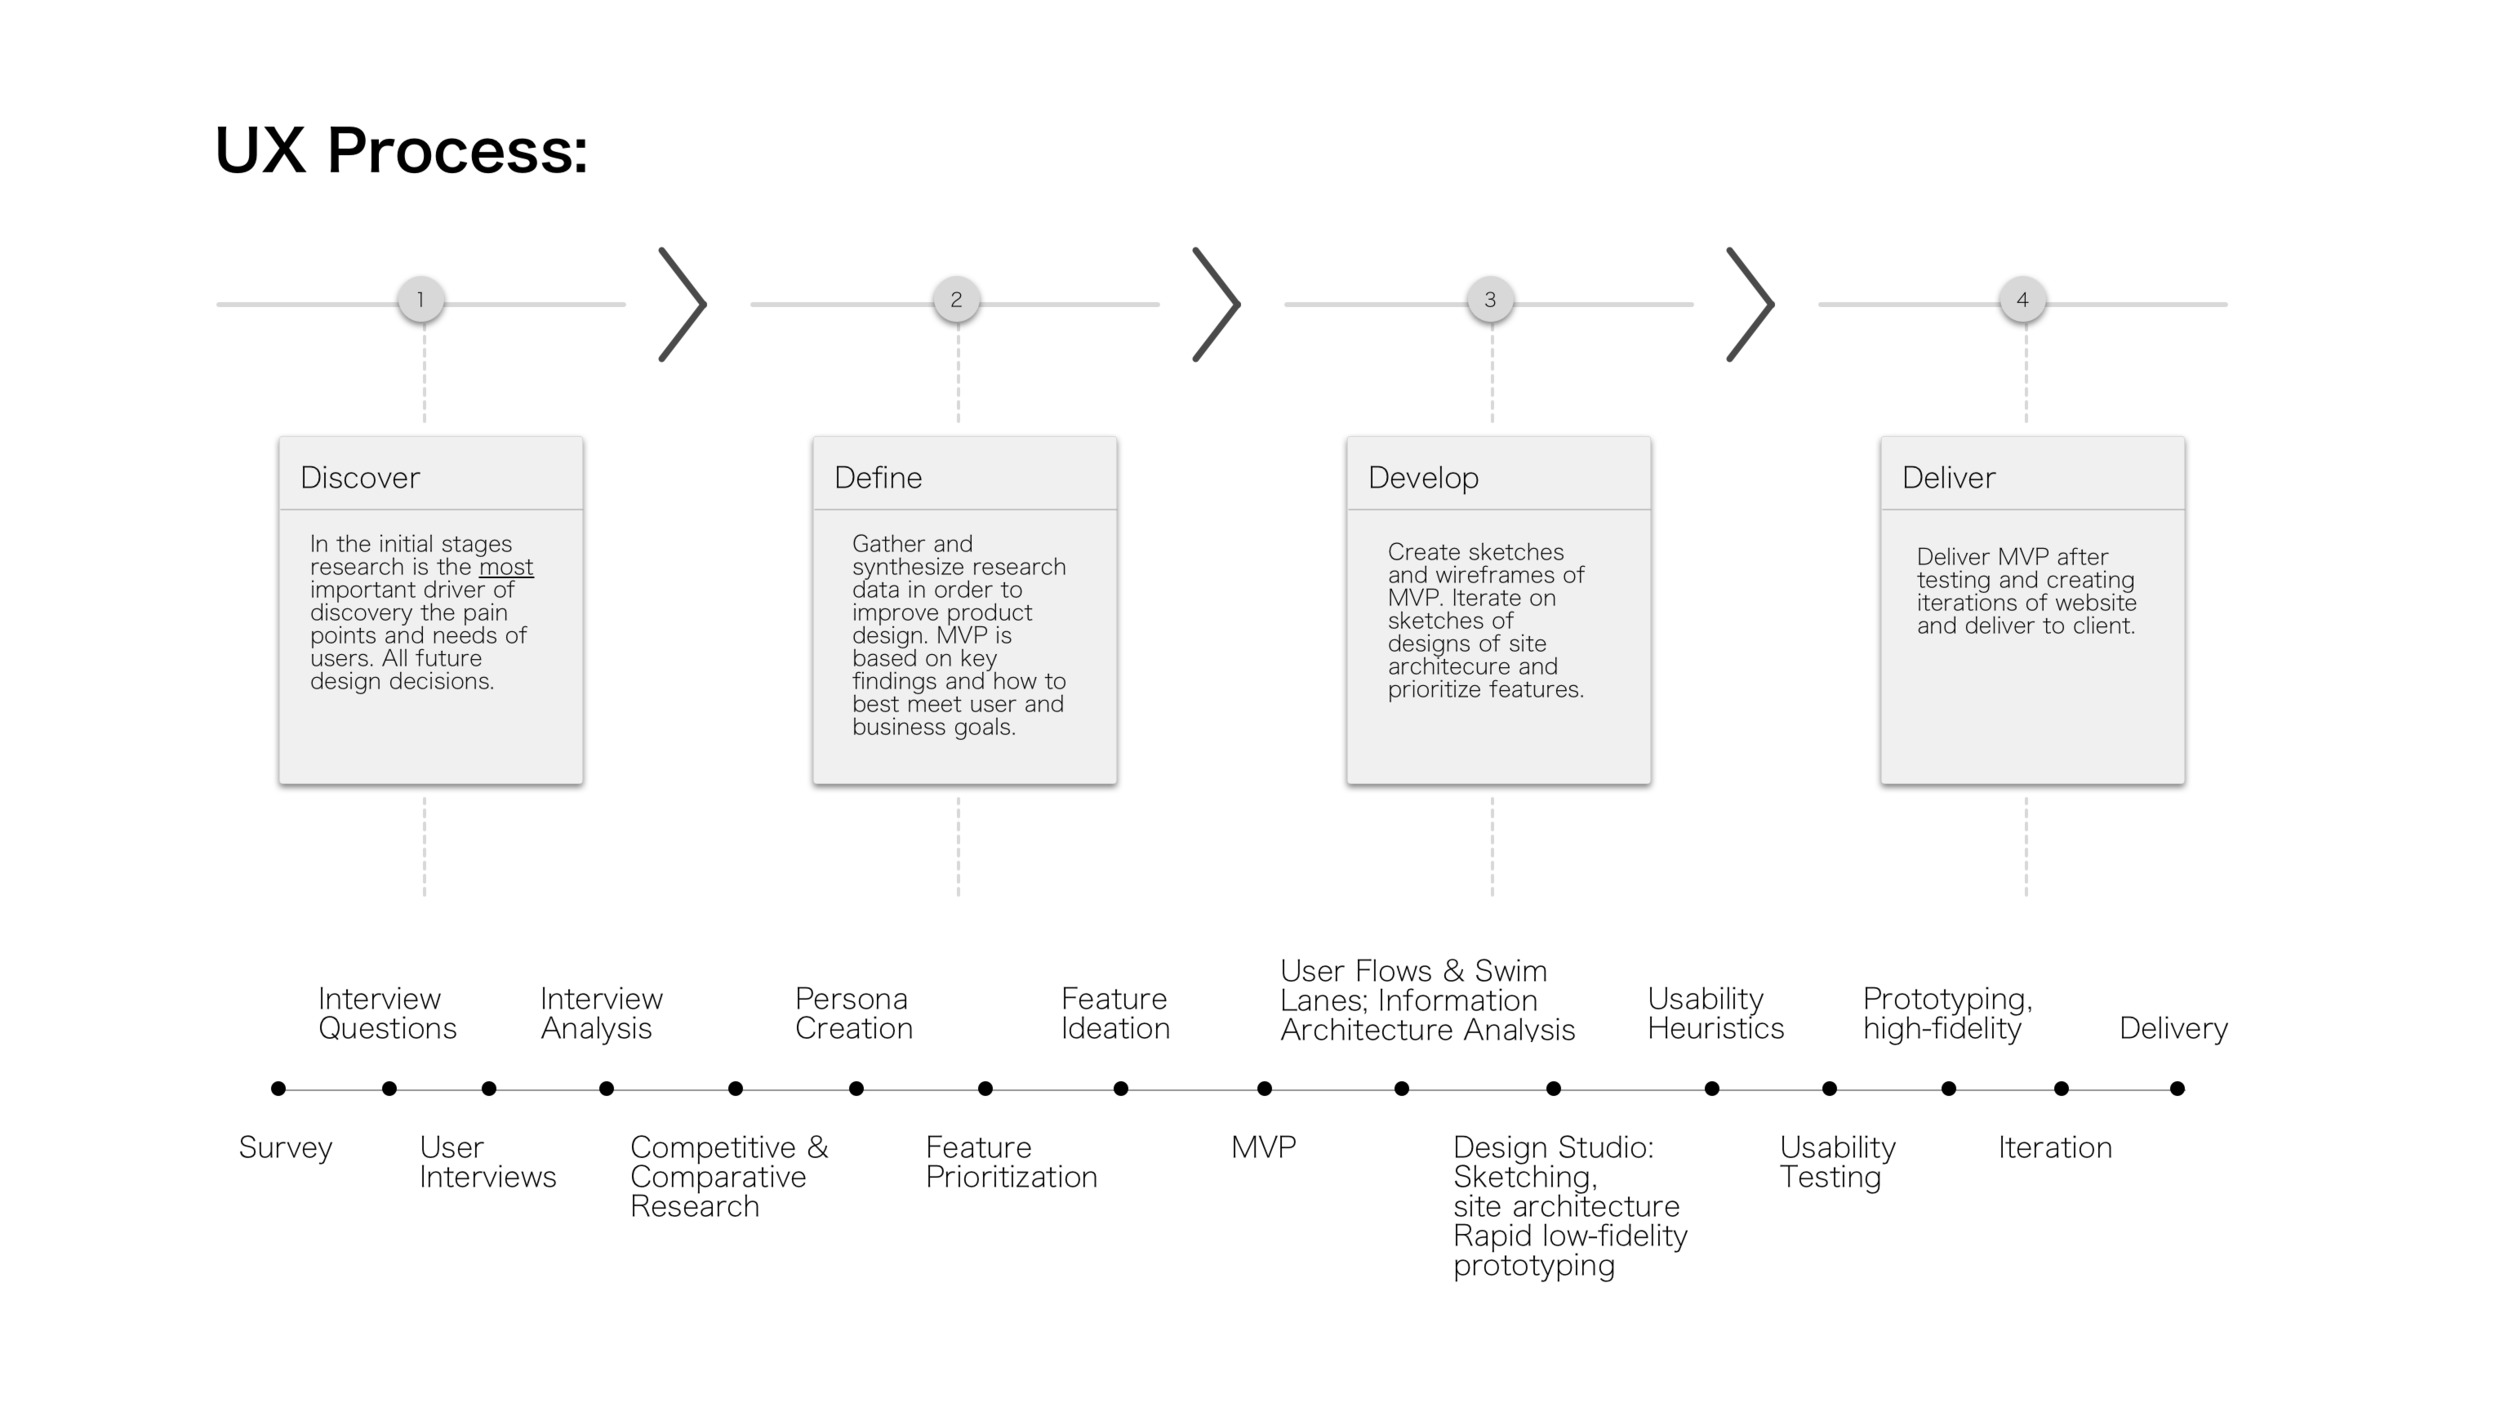 My teammates and I participated in each stage of the UX process, and we narrowed our focus to the most essential experiences and interactions needed to flow for all parties.